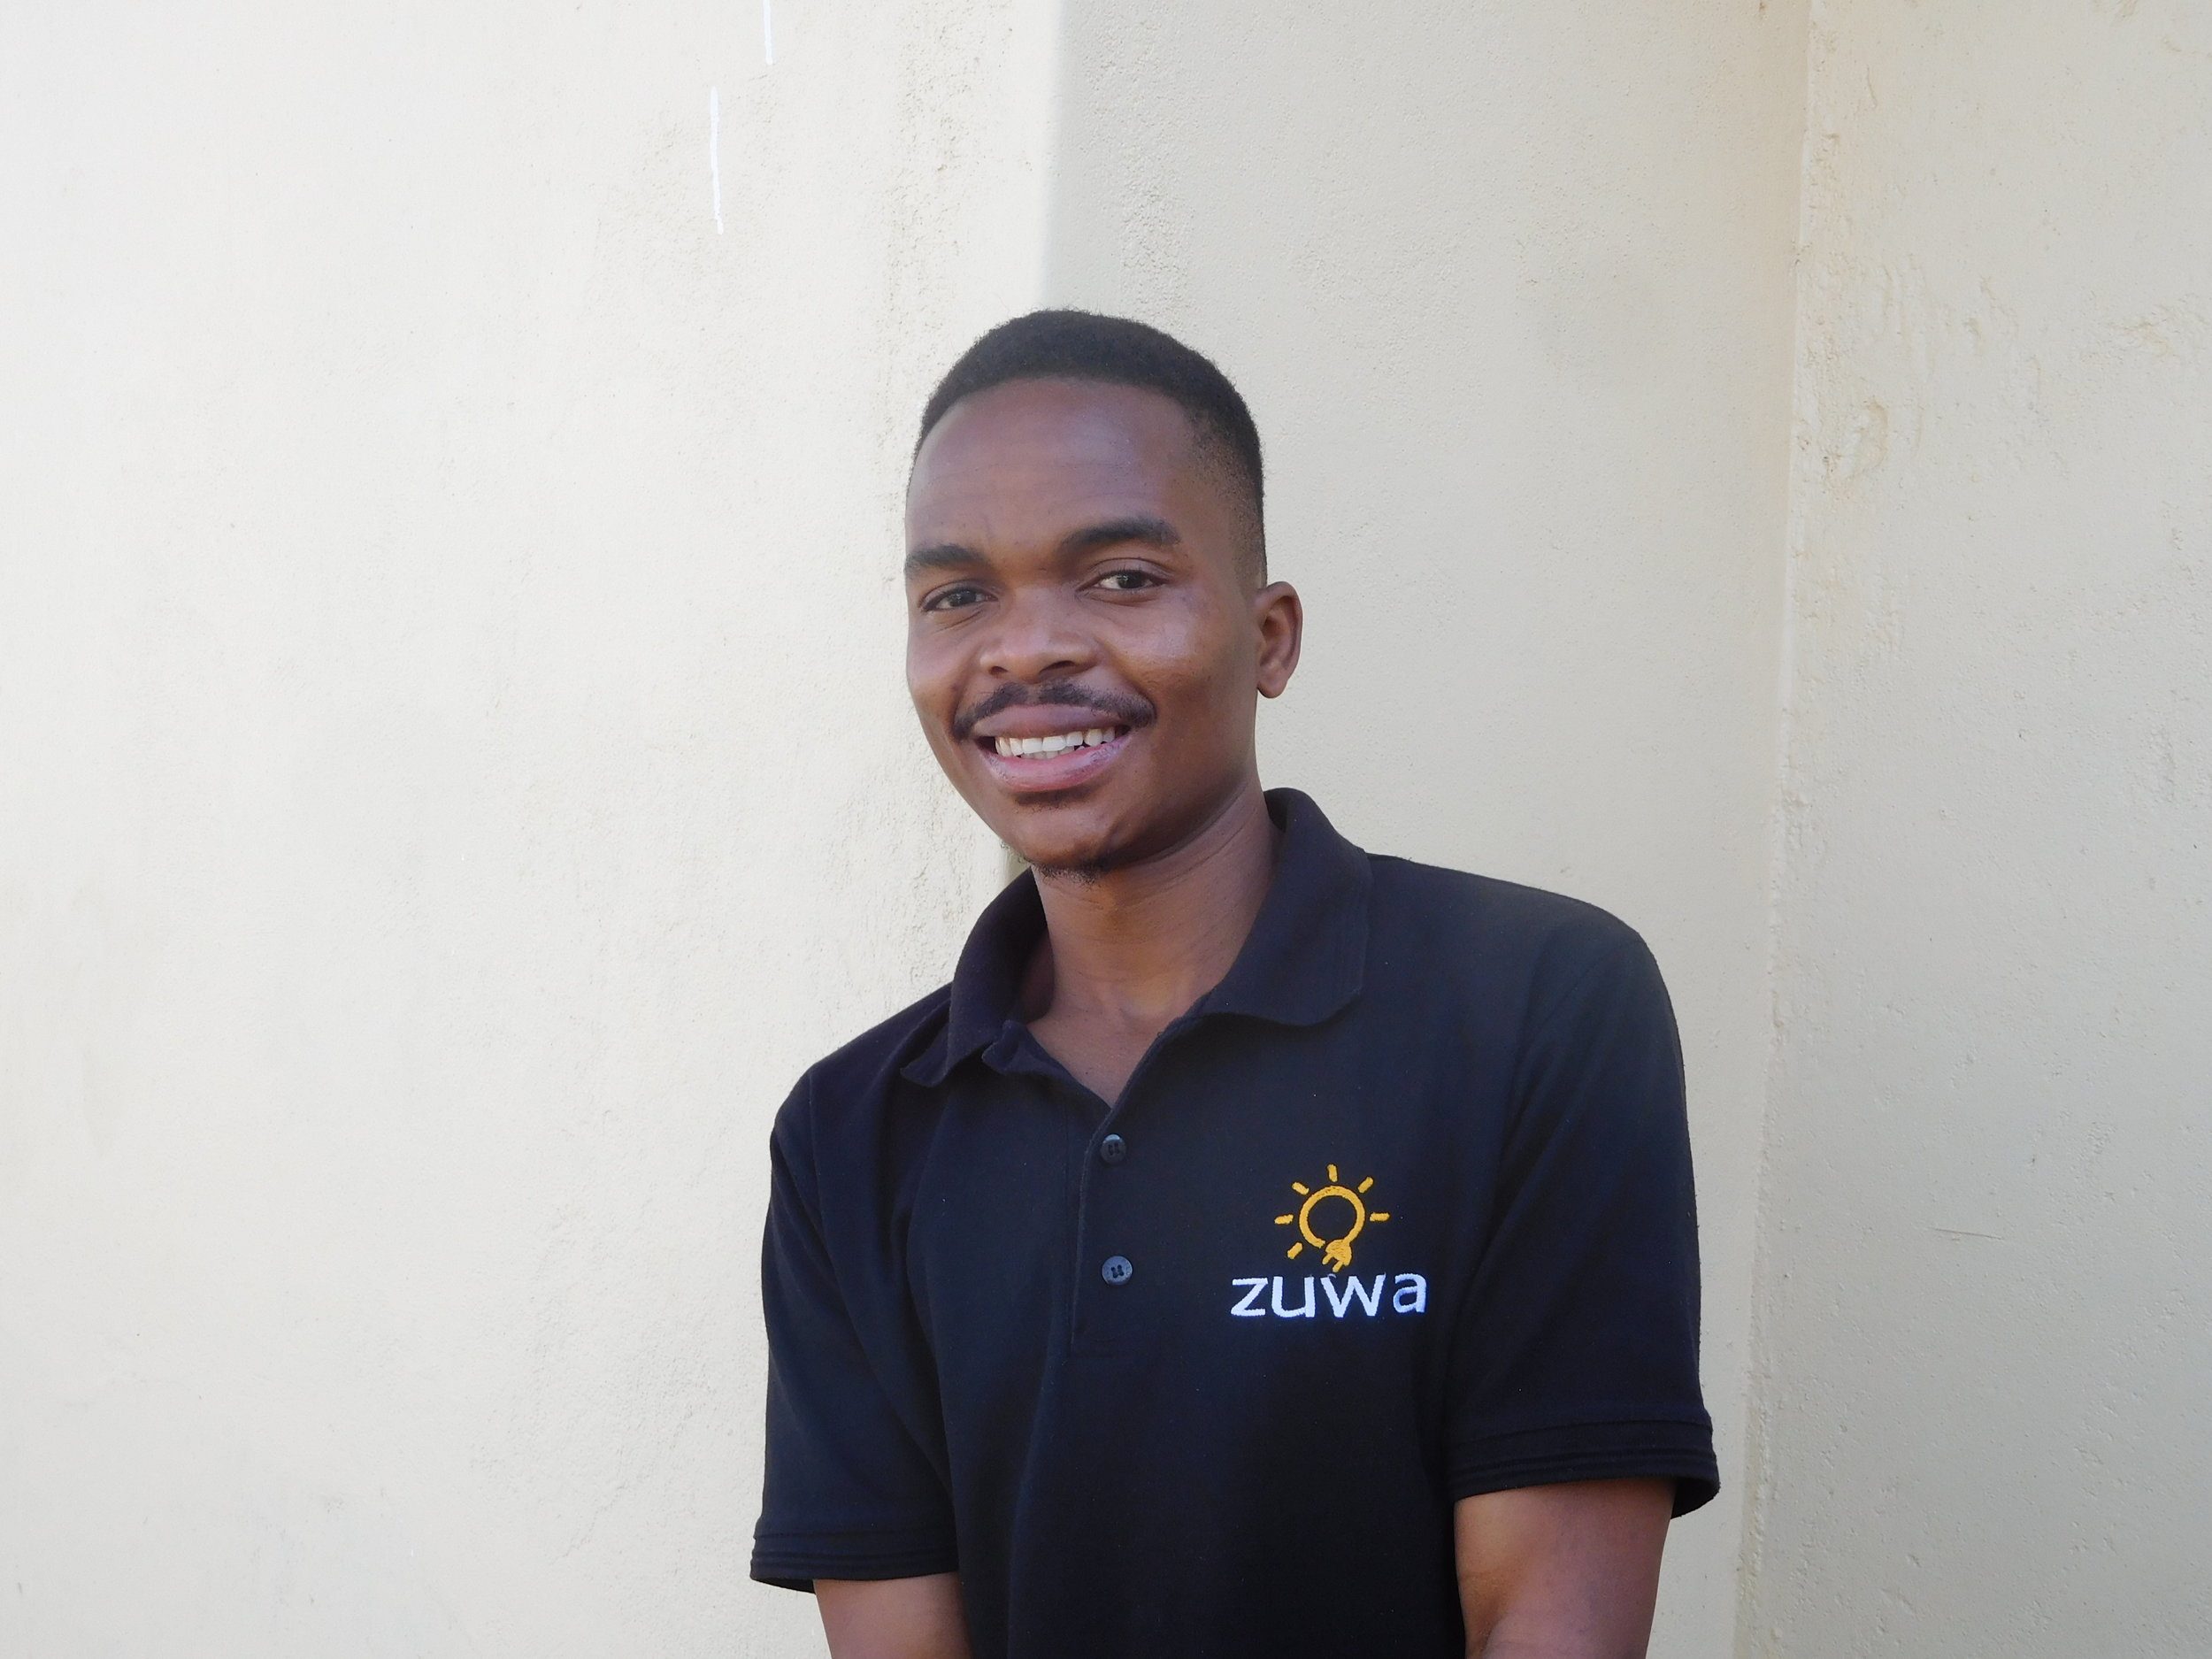 "GIFT KALINGO    I.T INTERN   Gift is a self -motivated I.T Specialist whose passion for ICT is unquestionable. He is always familiarizing himself with knowledge on various ranges of Information Technology softwares and concepts as they come, so he has various skills in the I.T field. He goes by his self-made favorite quote, ""Learning never ends in the world of I.T.""  Gift has a Bachelor's Degree in Information and Communication Technology obtained from Mzuzu University and he loves music (he is an R&B singer), watching movies, reading novels and exploring new places and making new friends."